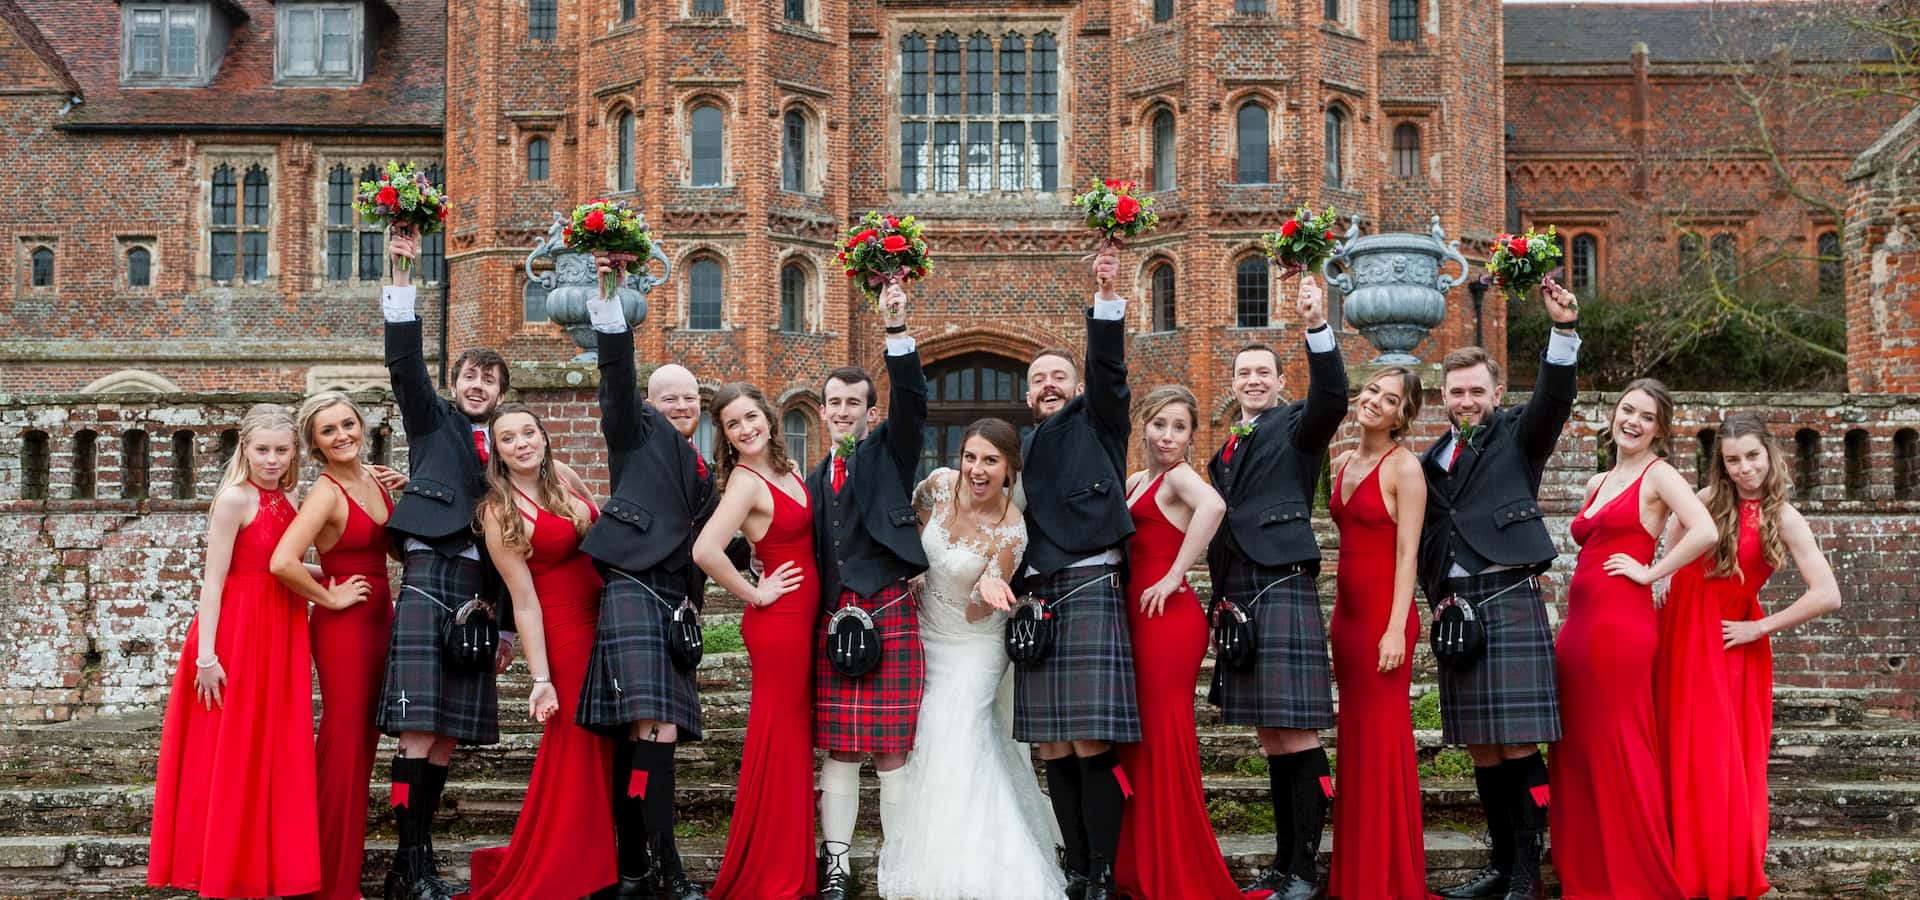 February wedding venue, Katie and David's February Wedding, Layer Marney Tower Weddings